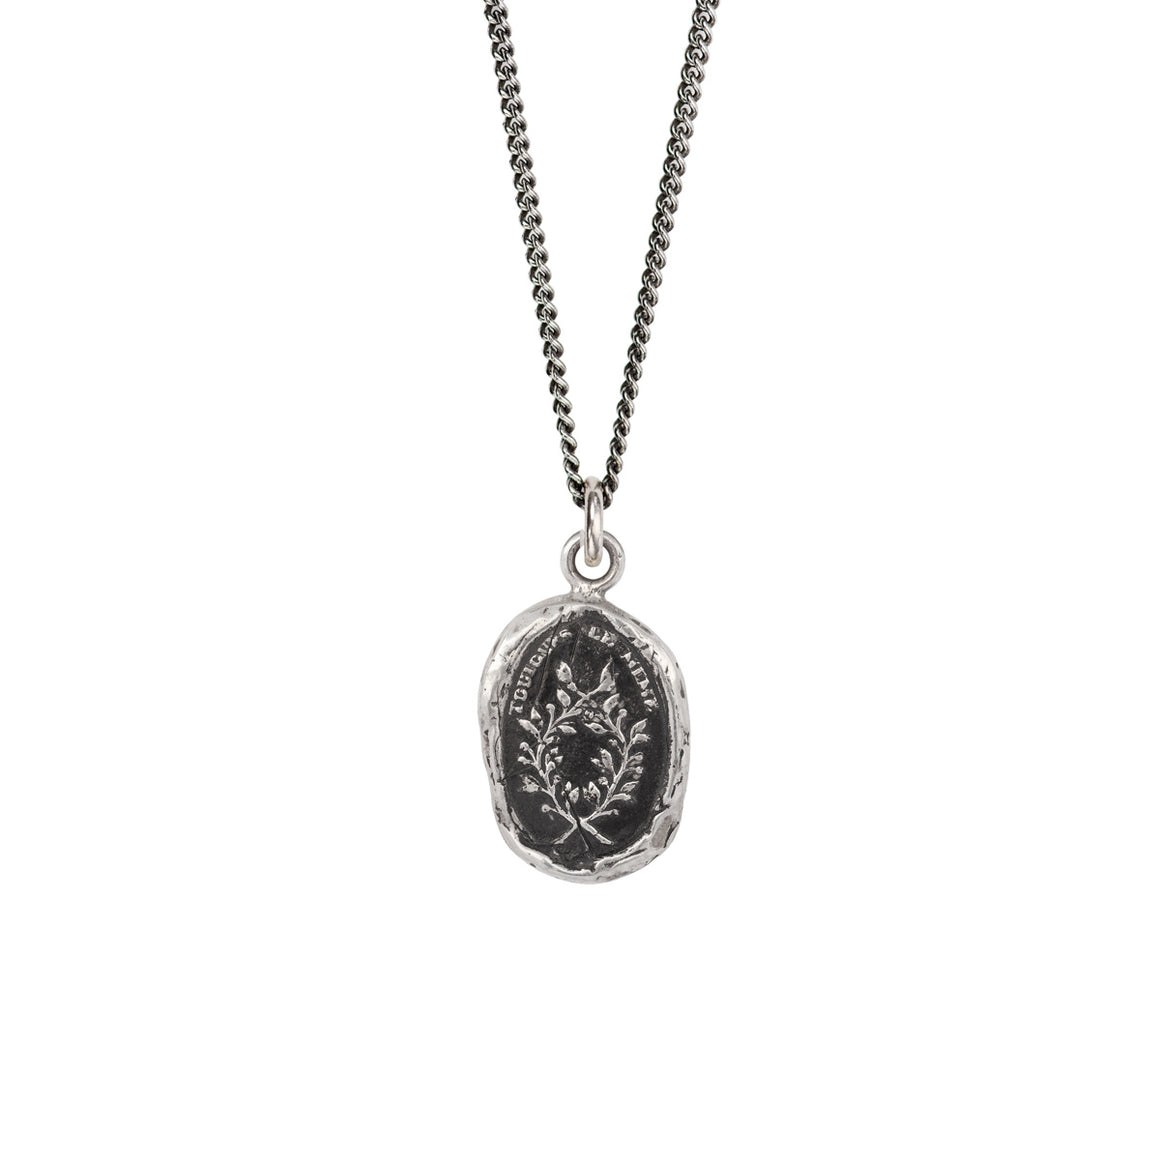 PYRRHA INTEGRITY TALISMAN NECKLACE